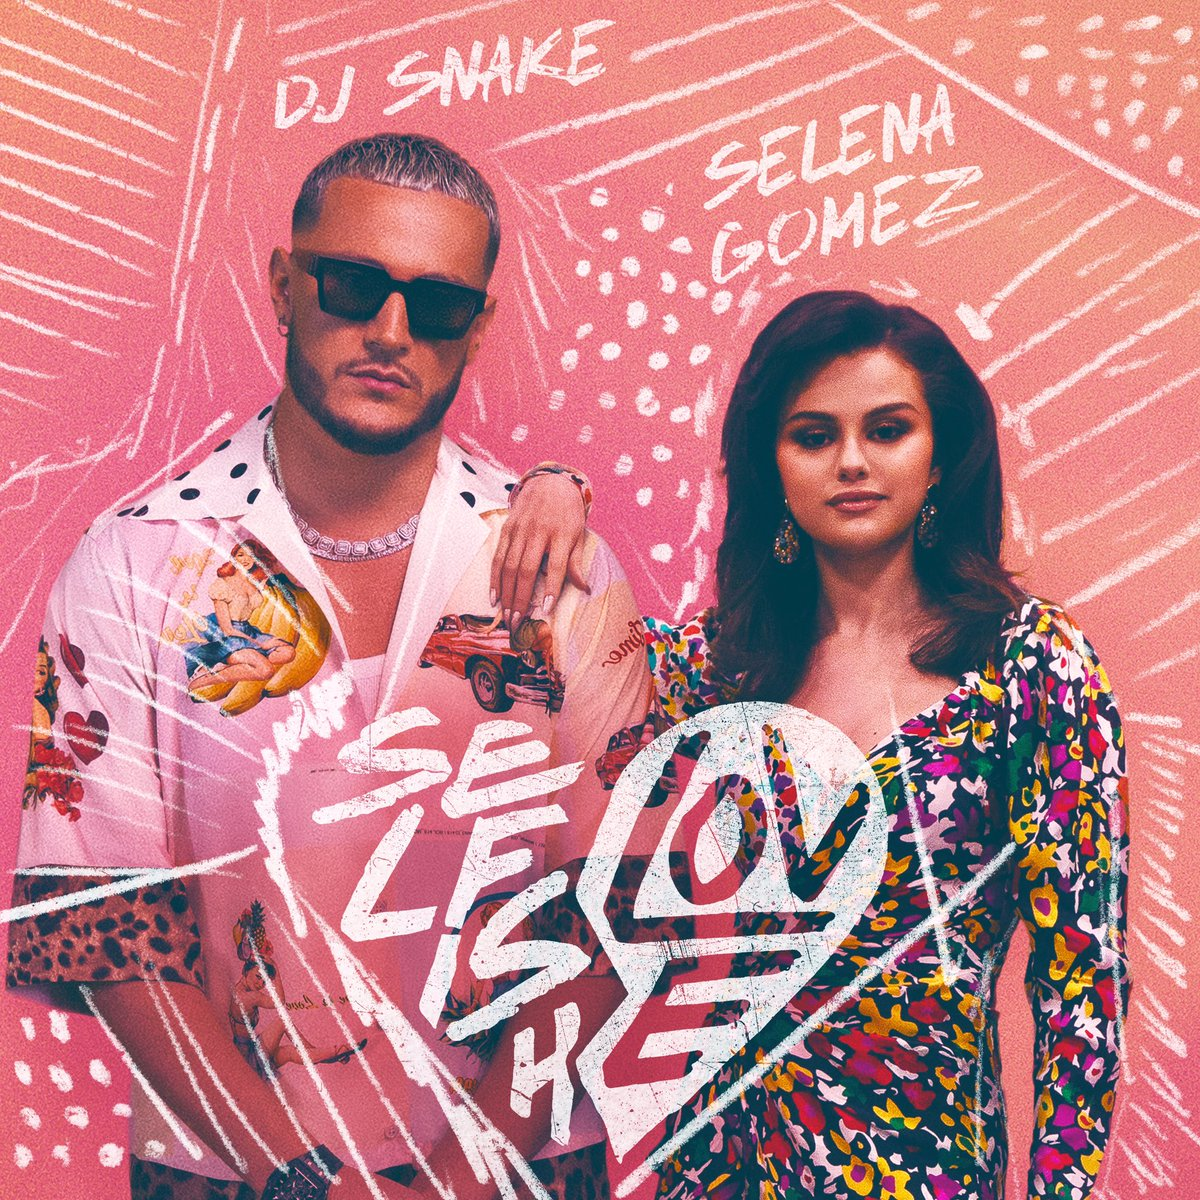 Replying to @djsnake: Selfish Love with @selenagomez is out now everywhere! 💞🎷